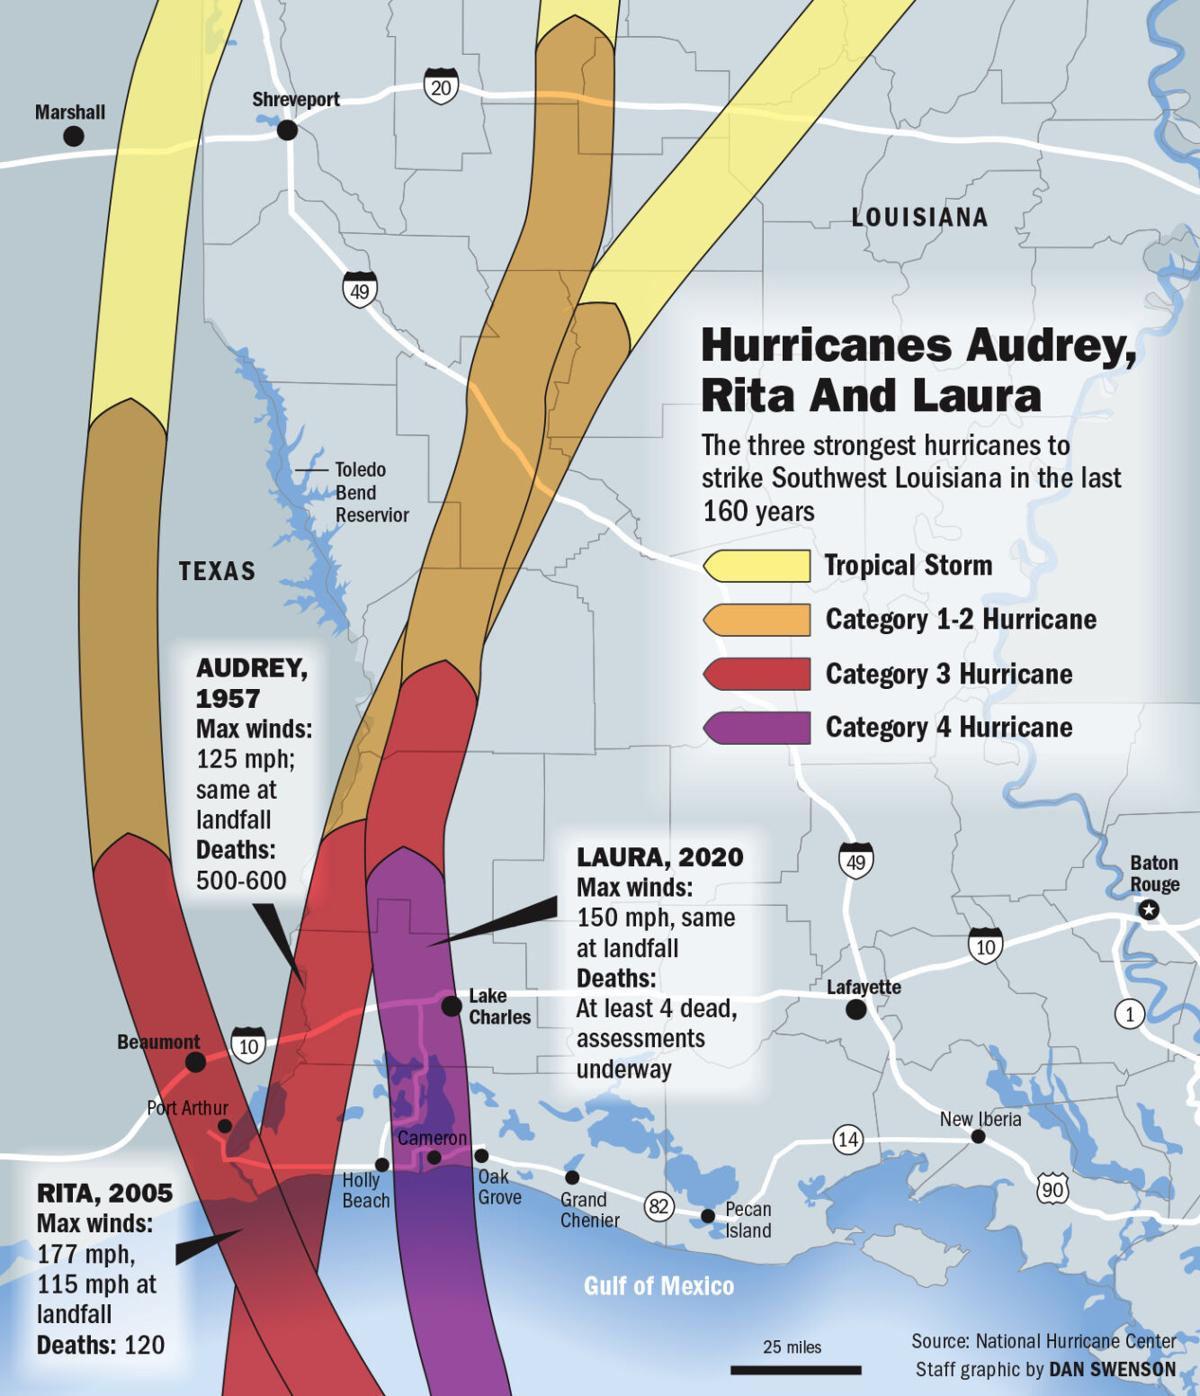 082820 Hurricanes Laura Rita Audrey map